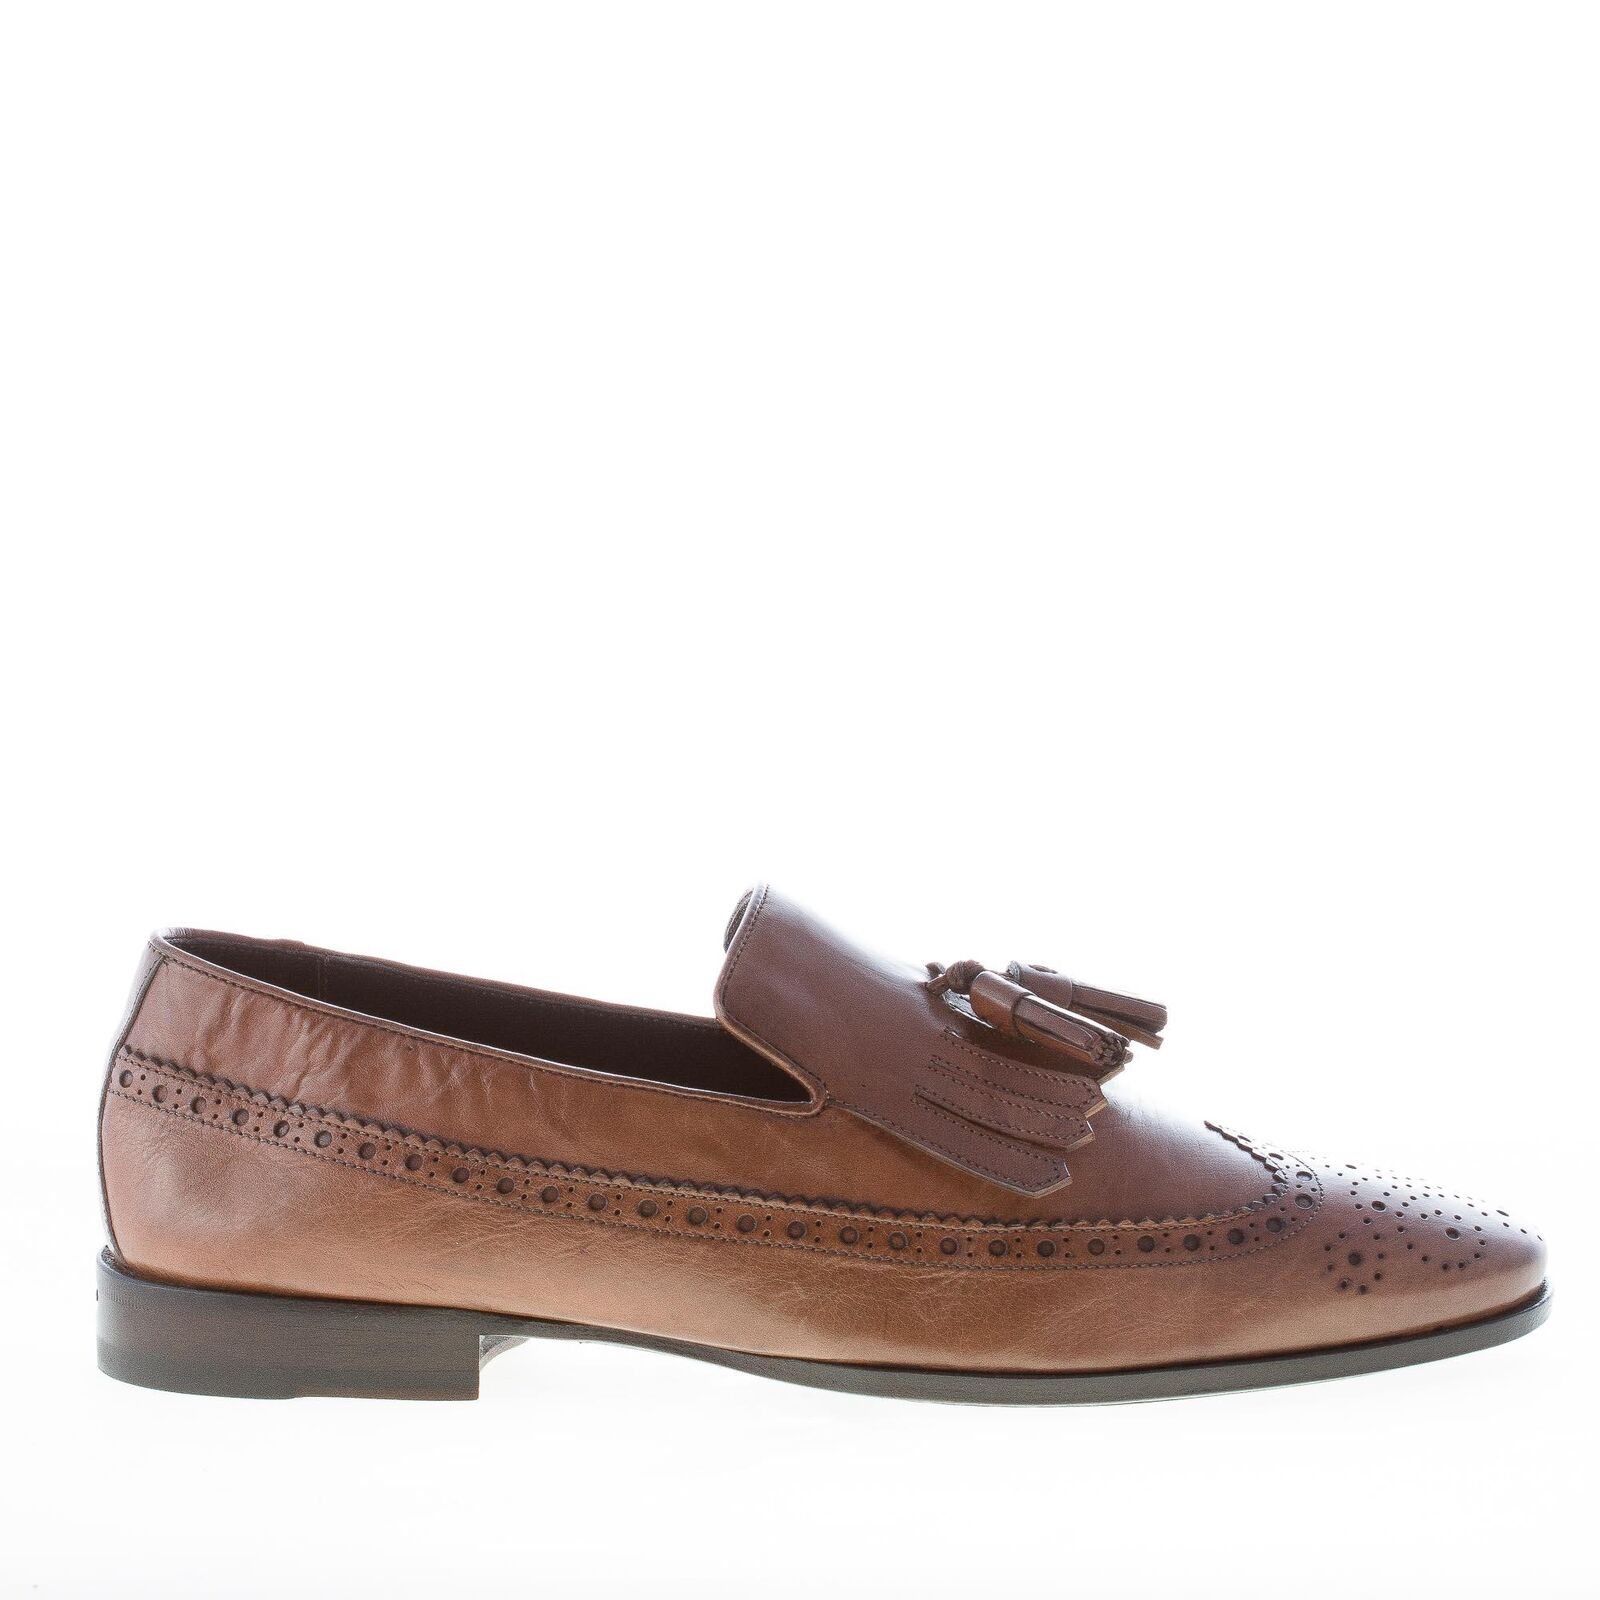 ORTIGNI herren schuhe Natural taupe leather loafer fringe tassels made in